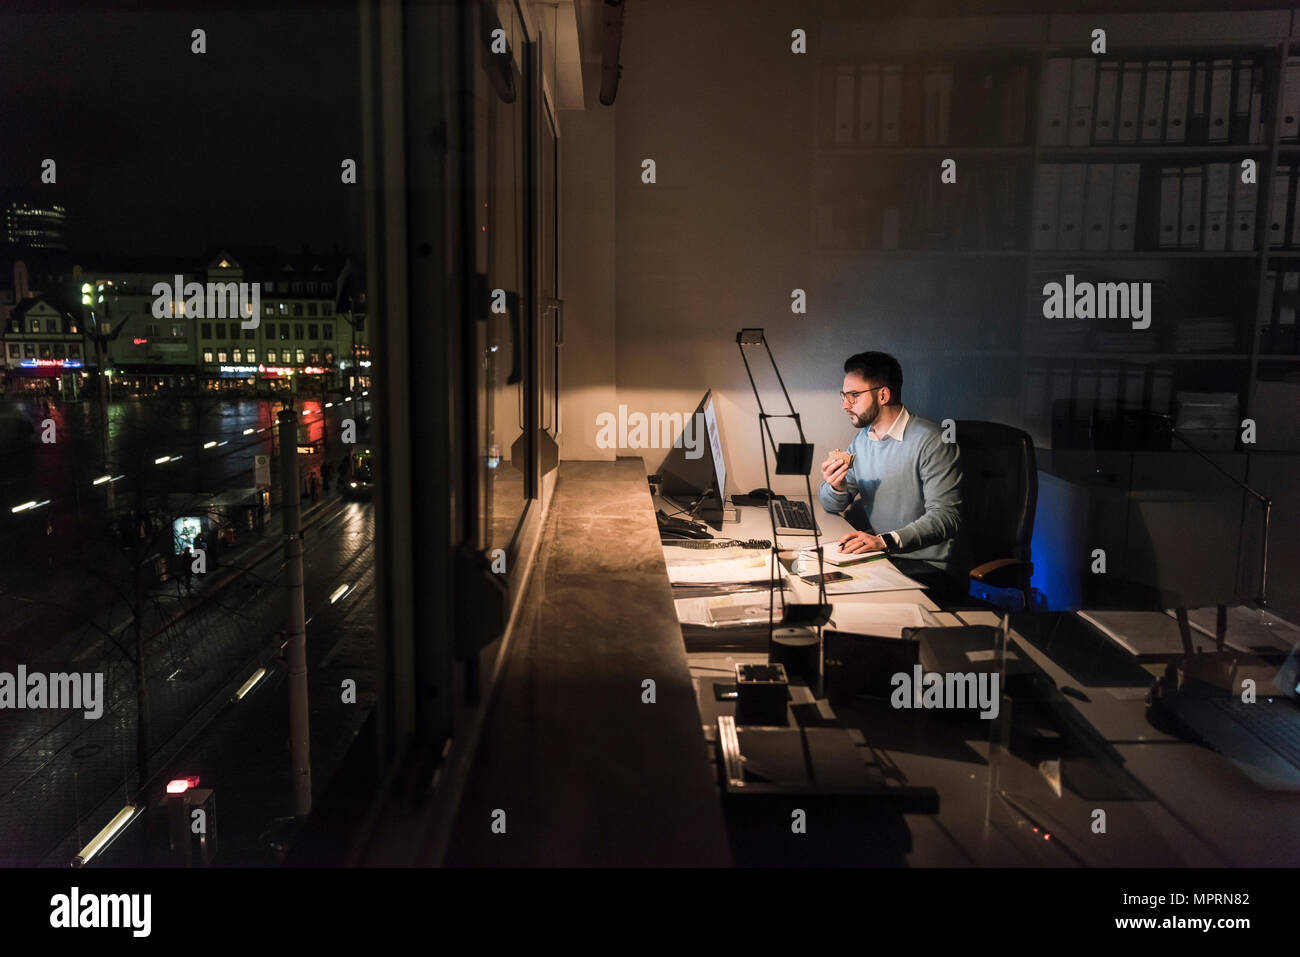 Businessman working on computer in office at night - Stock Image